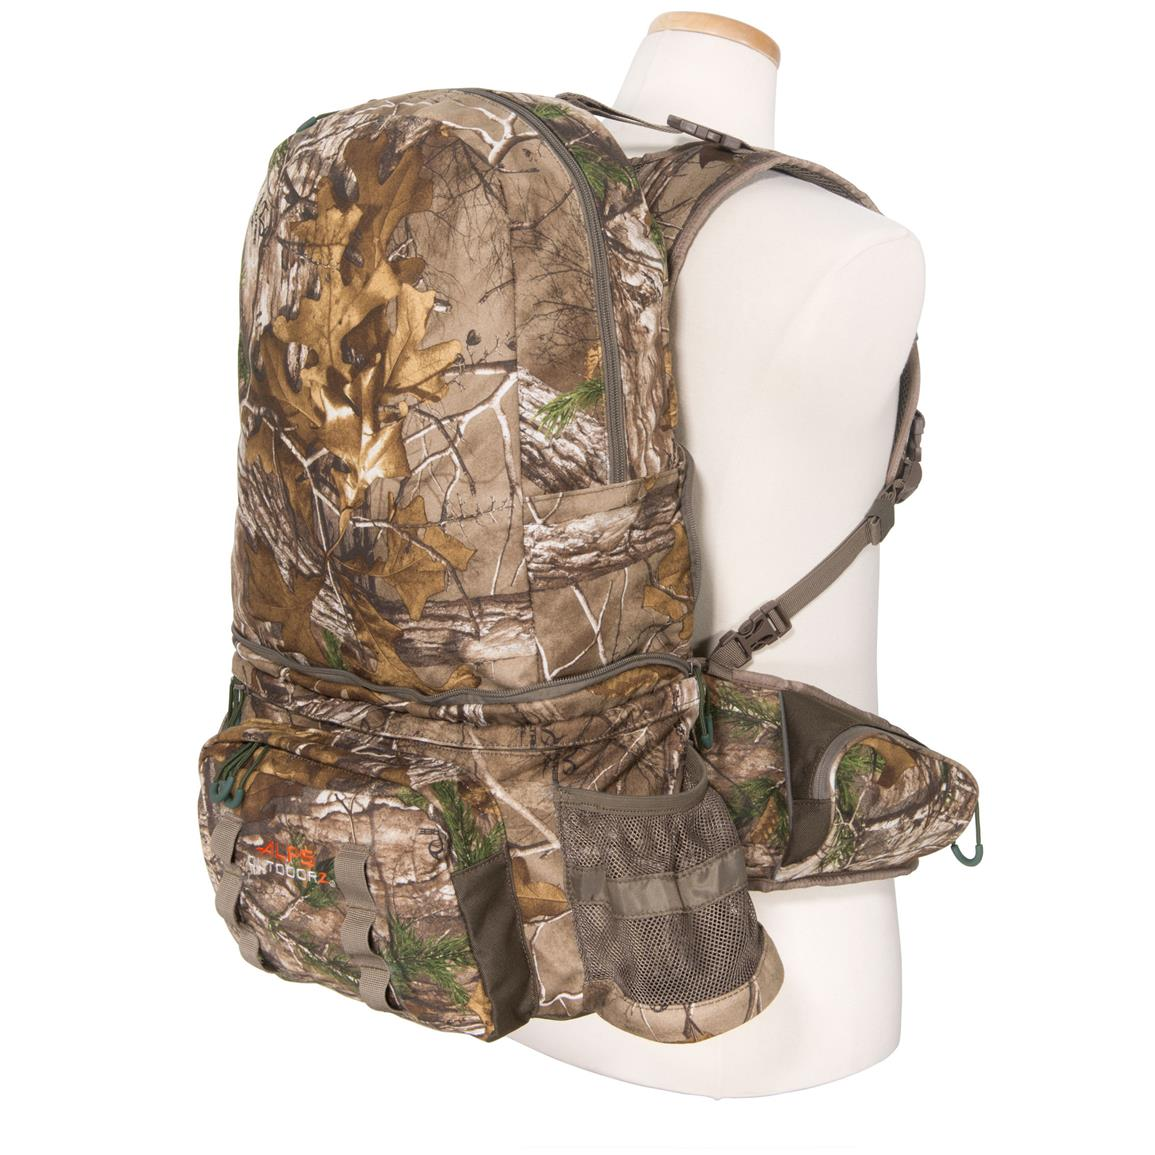 ALPS OutdoorZ Big Bear Hunting Pack